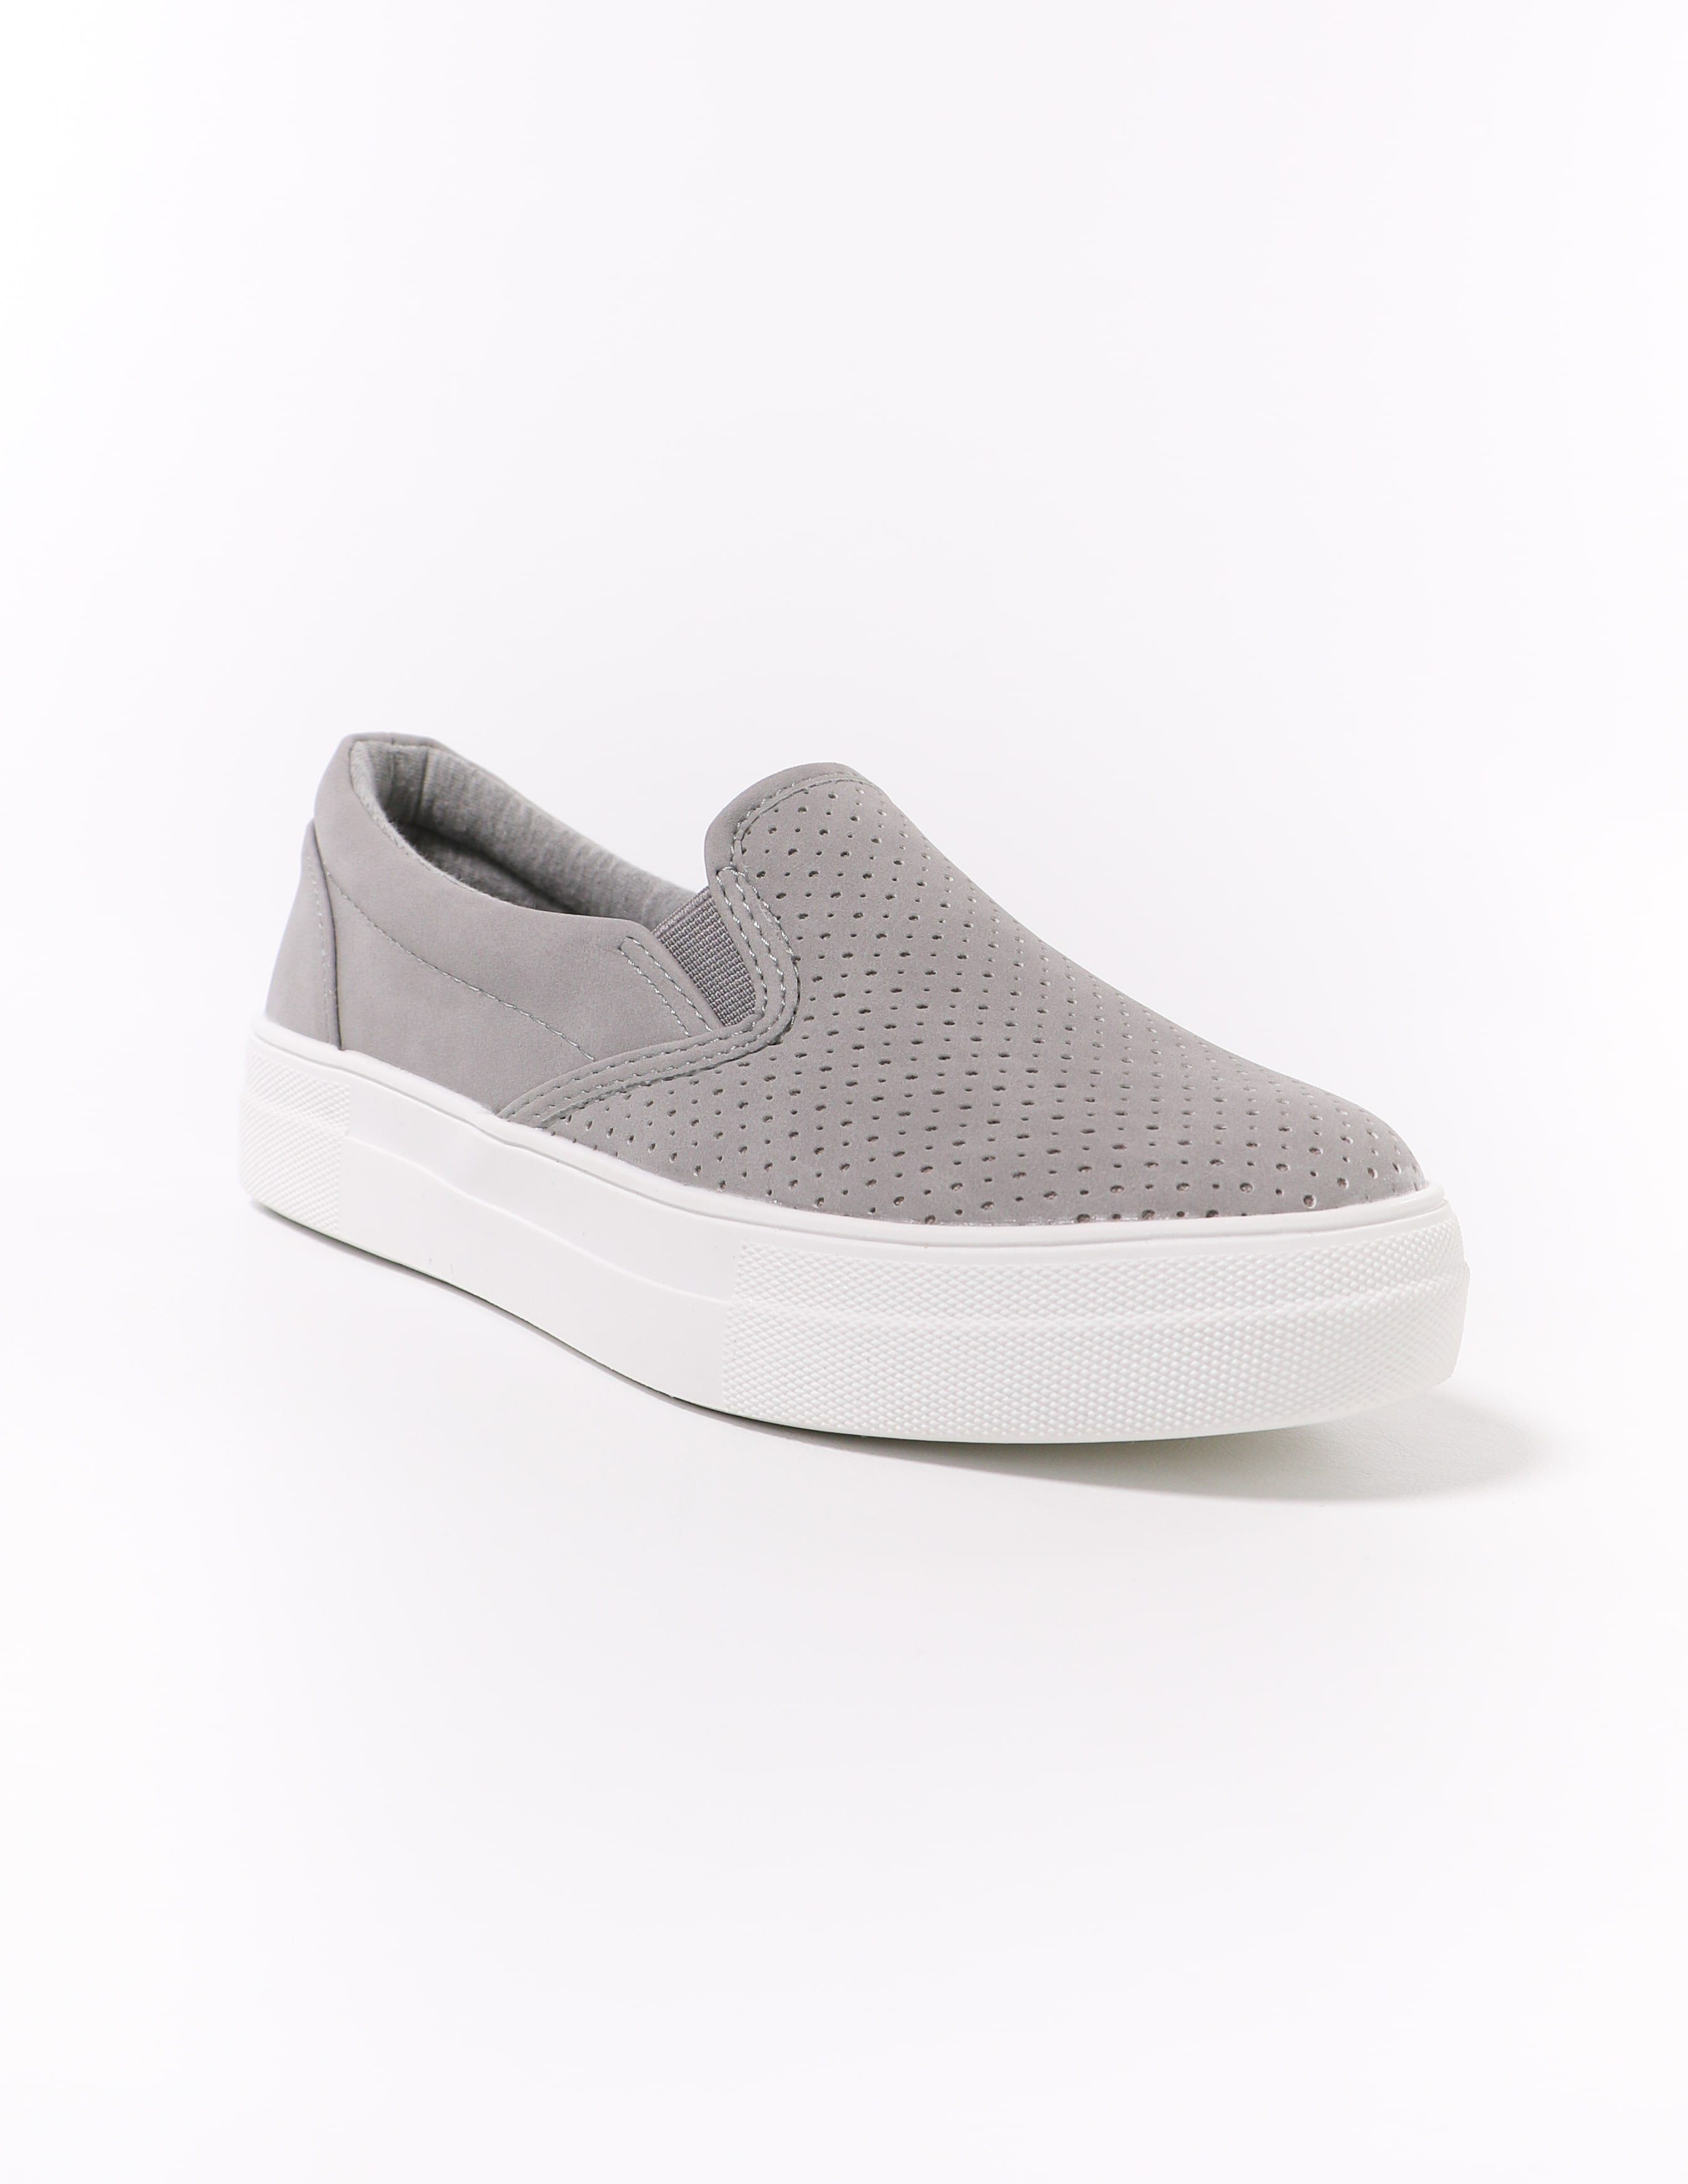 white bottom perforated grey perf every penny sneaker - elle bleu